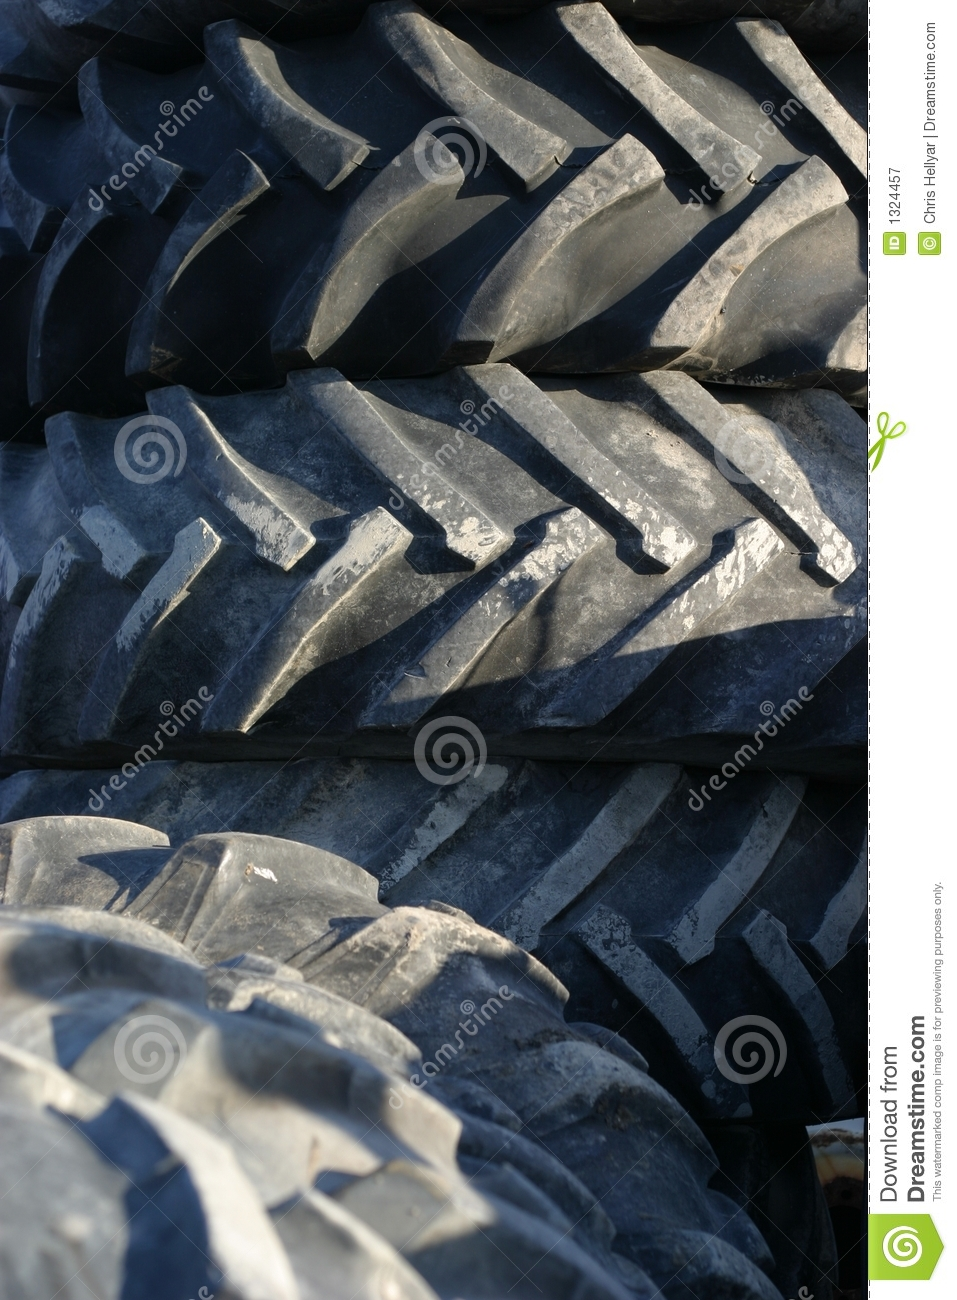 Tractor tires royalty free stock photography image 1324457 for Scrap tractor tires